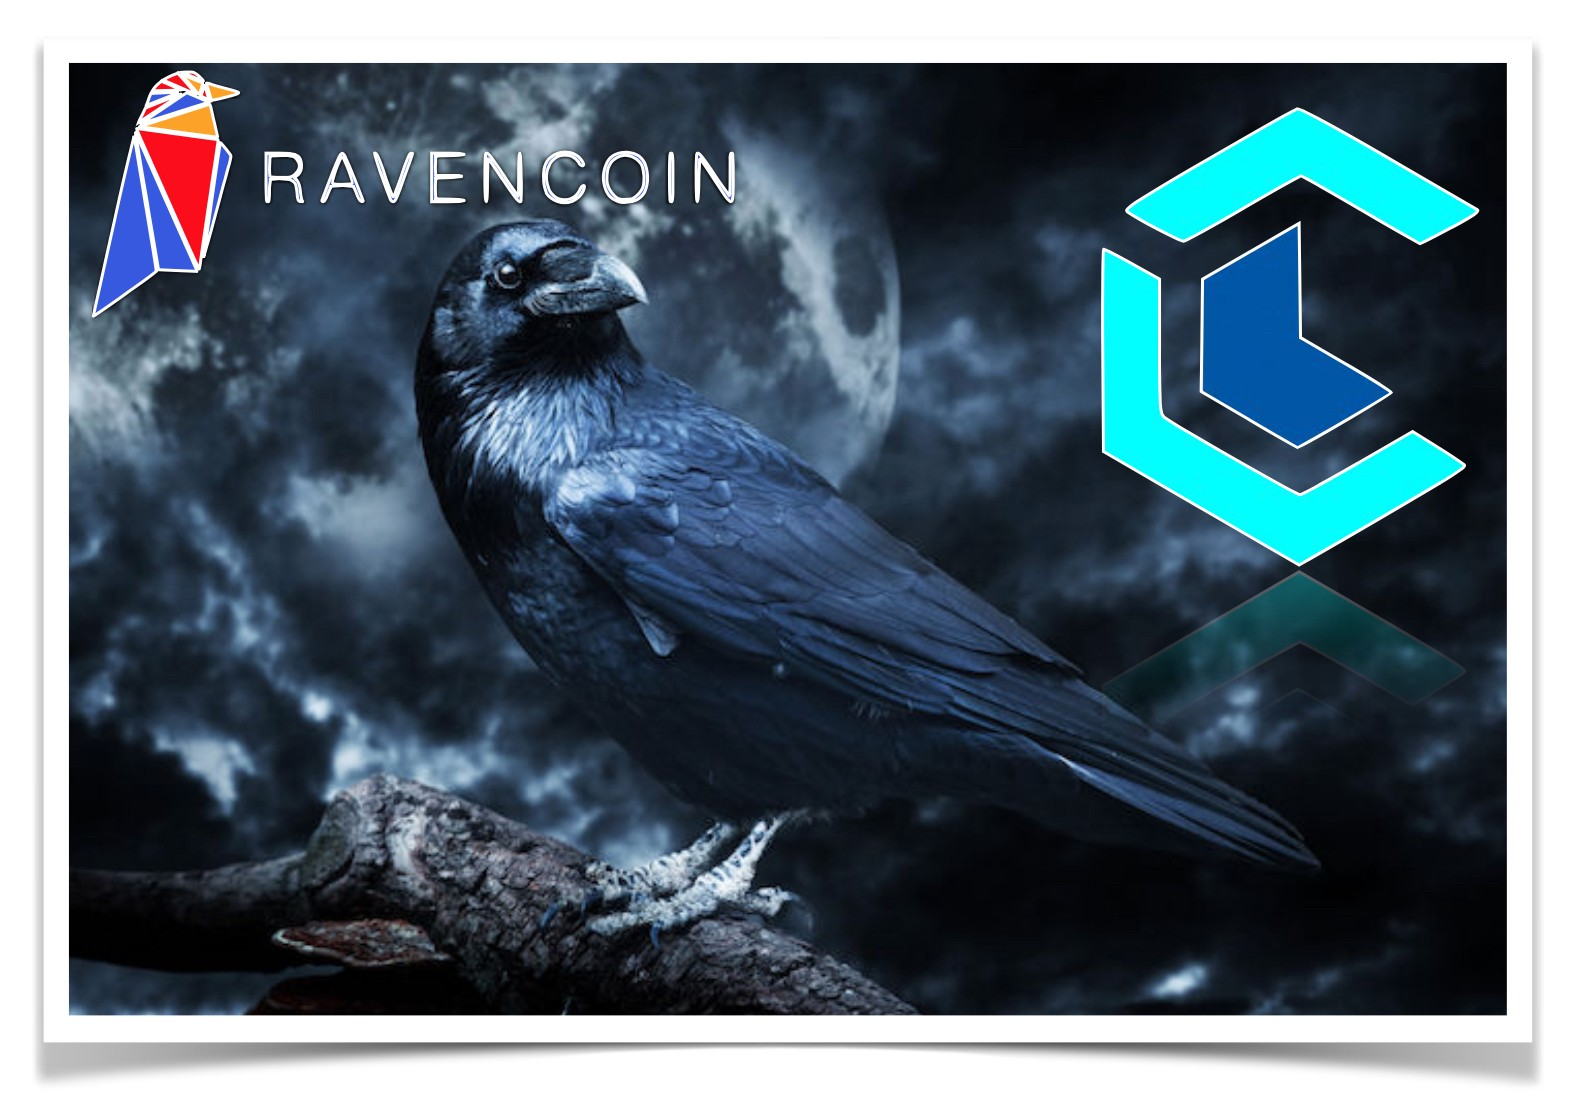 332c3c3575 Ravencoin is a free open source platform designed for the specific use case  of transferring assets such as token-backed assets from one holder to  another.